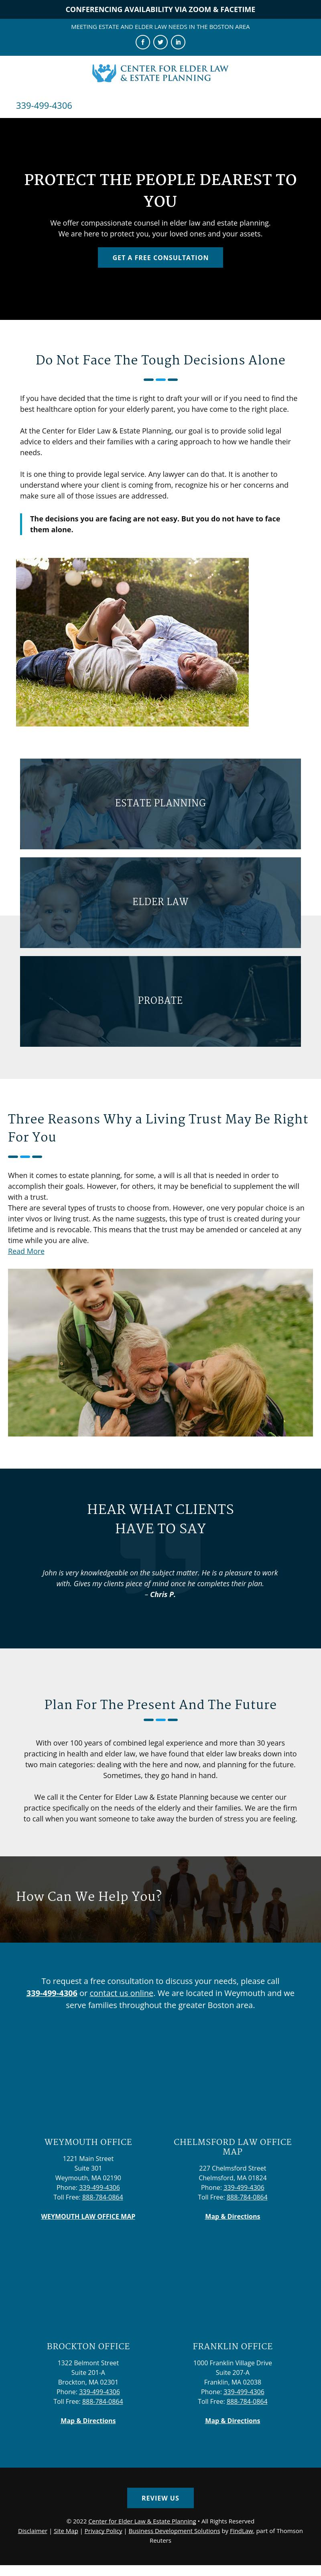 Center For Elder Law & Estate Planning - Brockton MA Lawyers